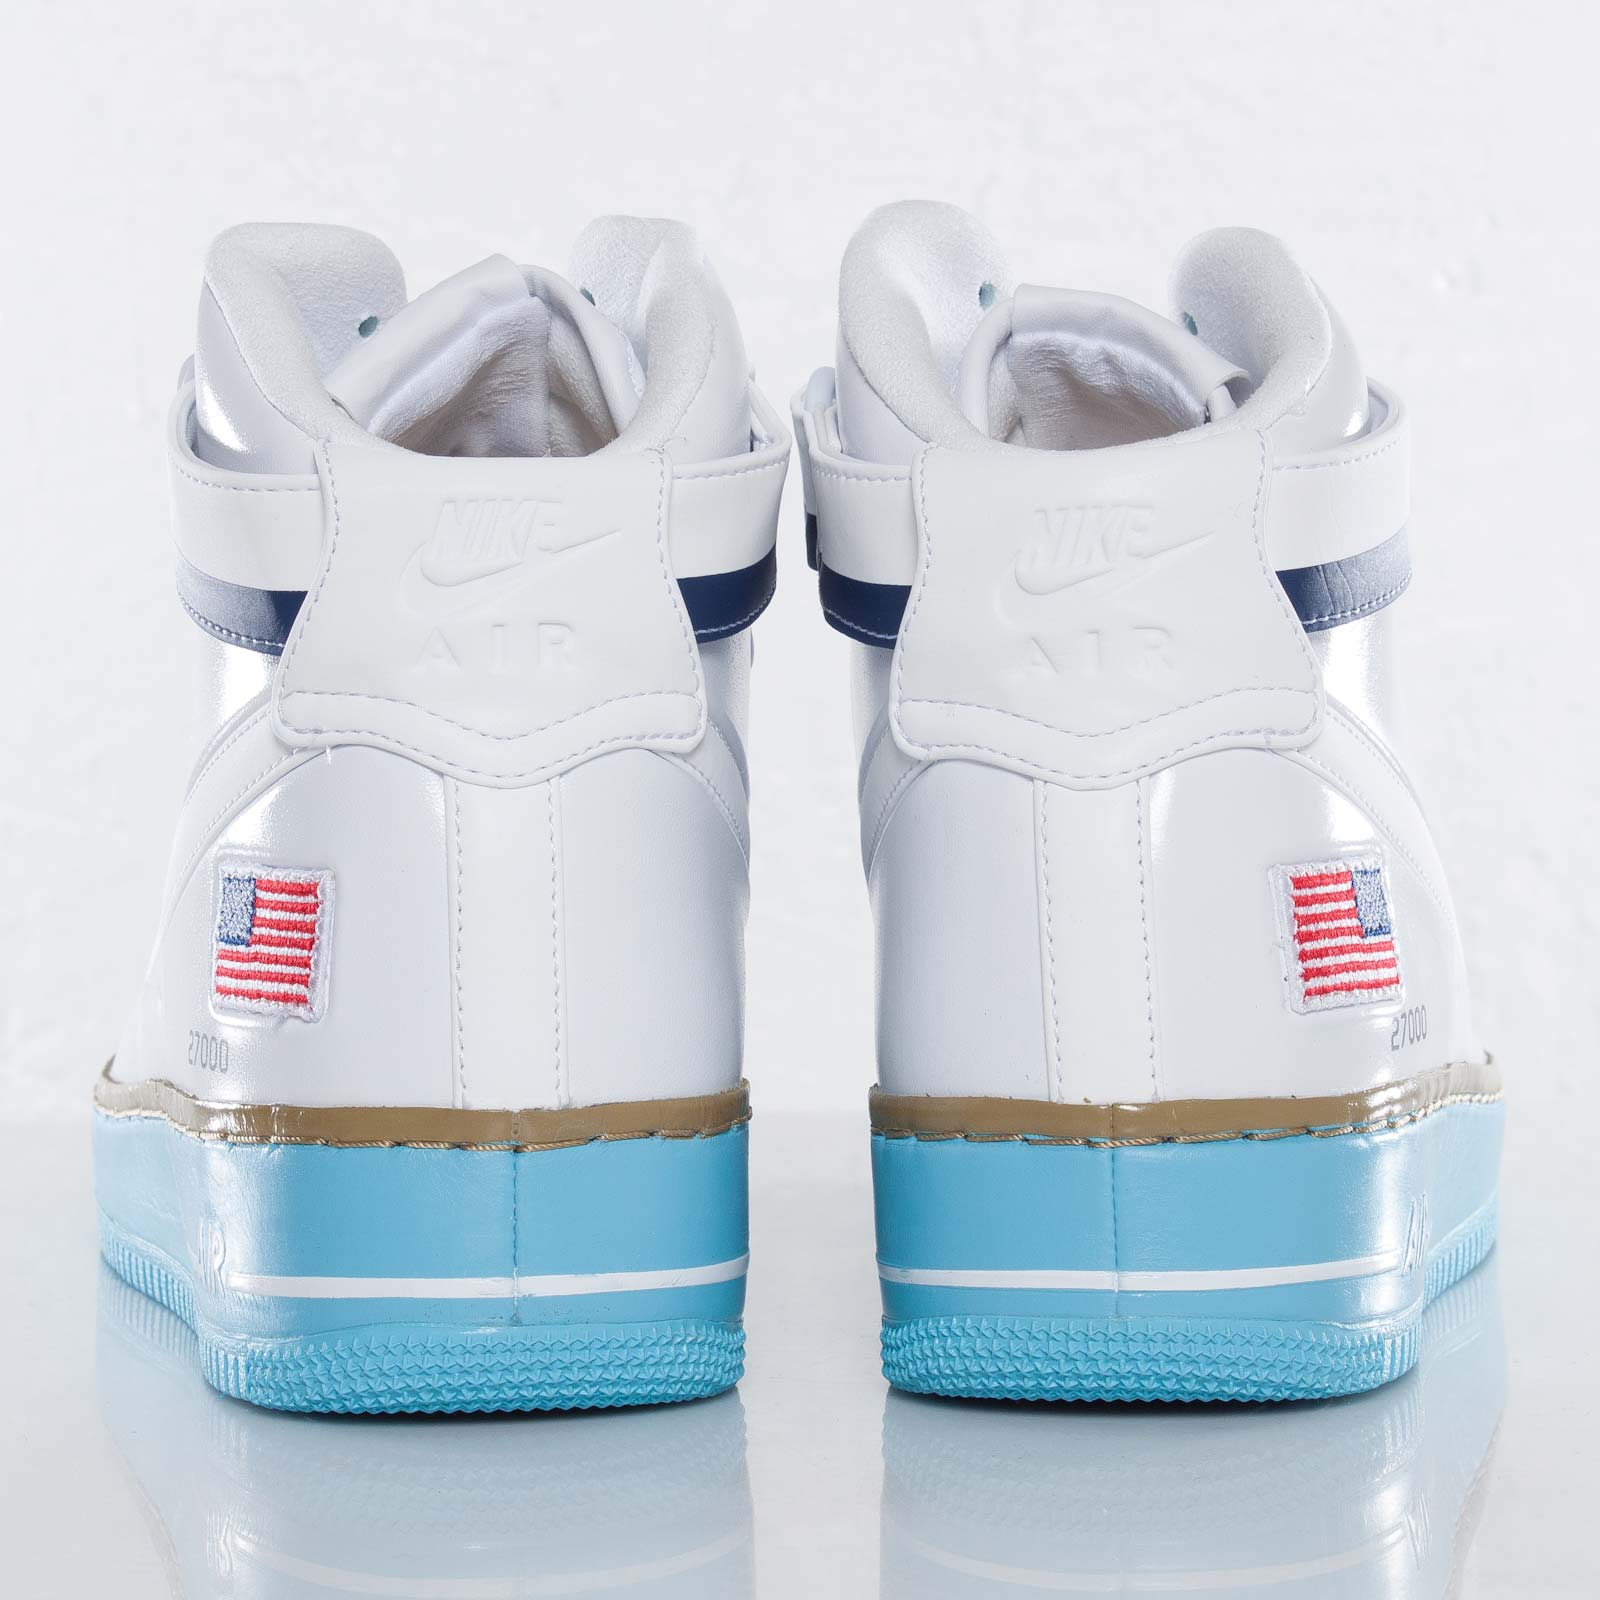 Nike Air Force 1 High Bday QS 573752 100 Sneakersnstuff